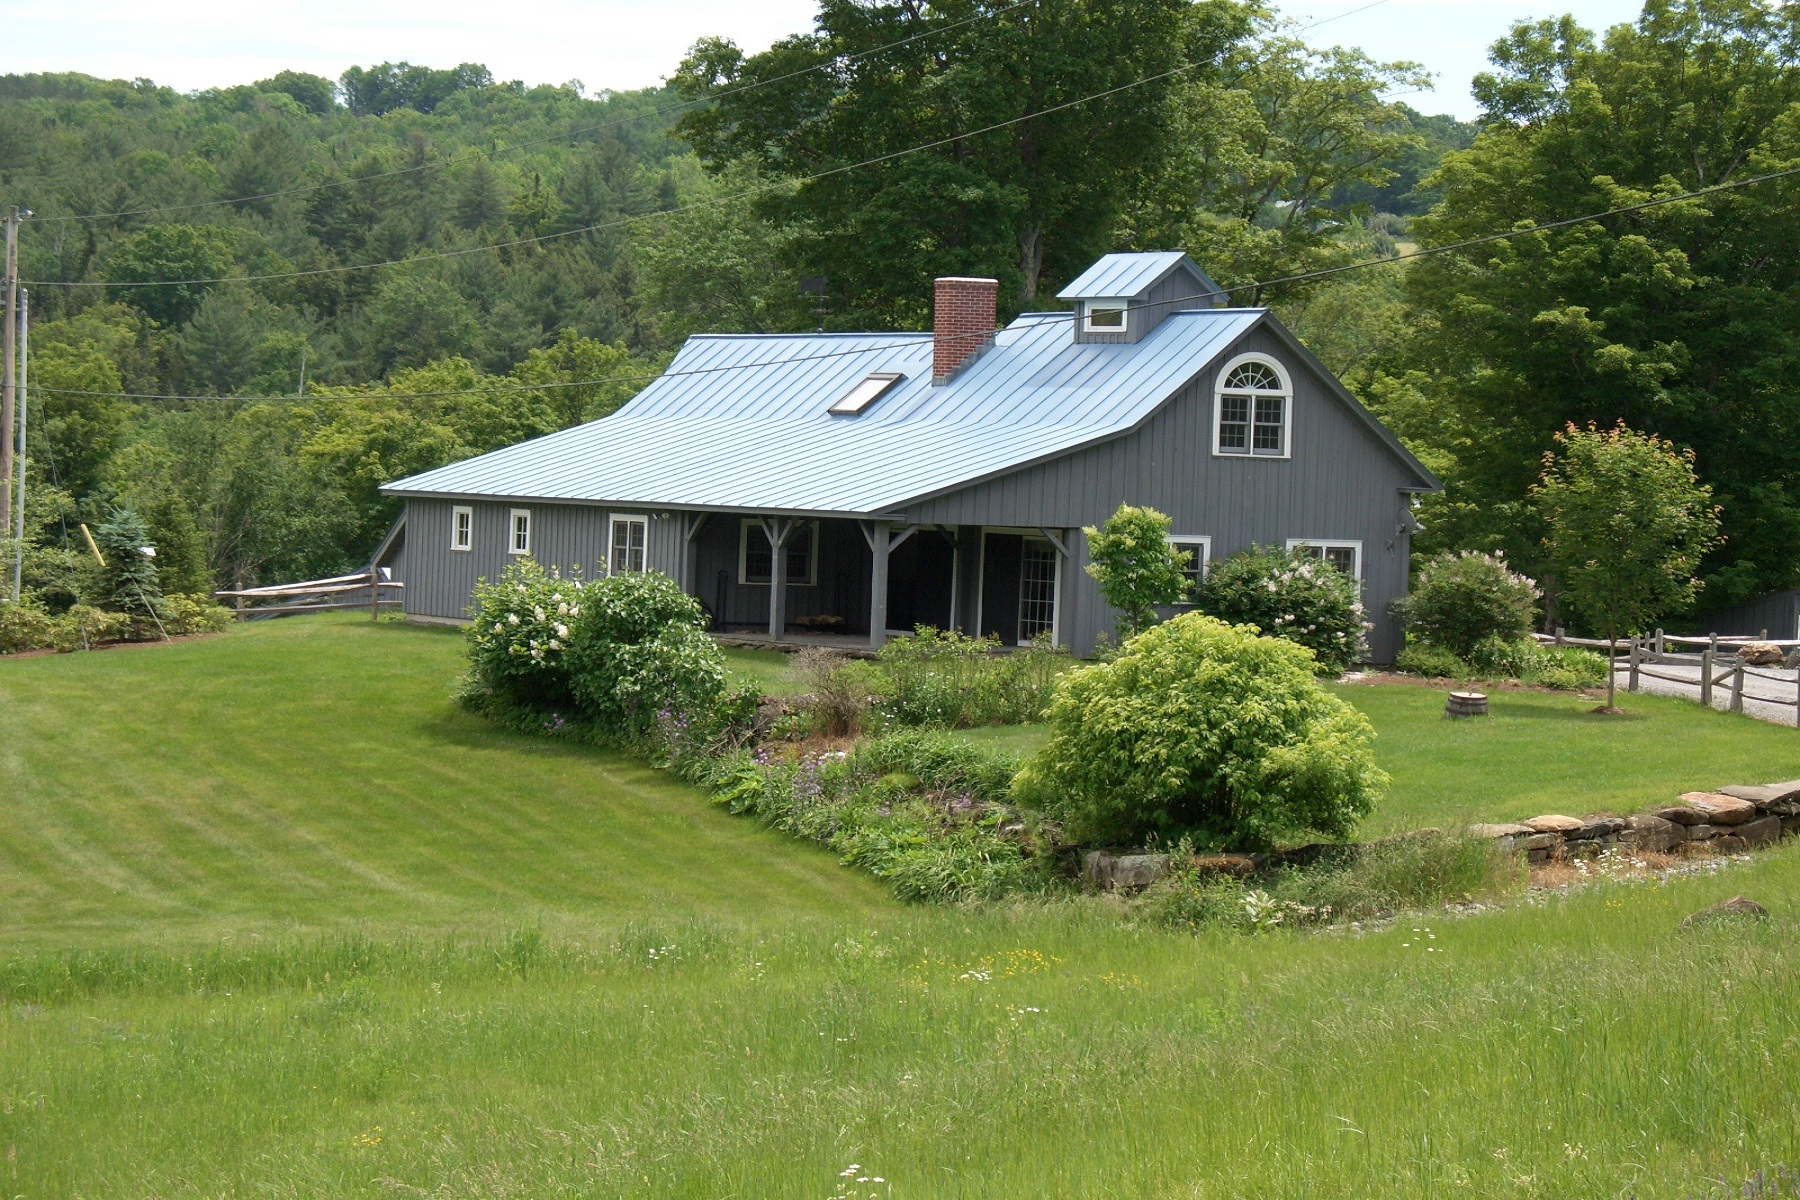 Single Family Home for Sale at Antique Post & Beam 25 Coutu Court, Tunbridge, Vermont, 05077 United States